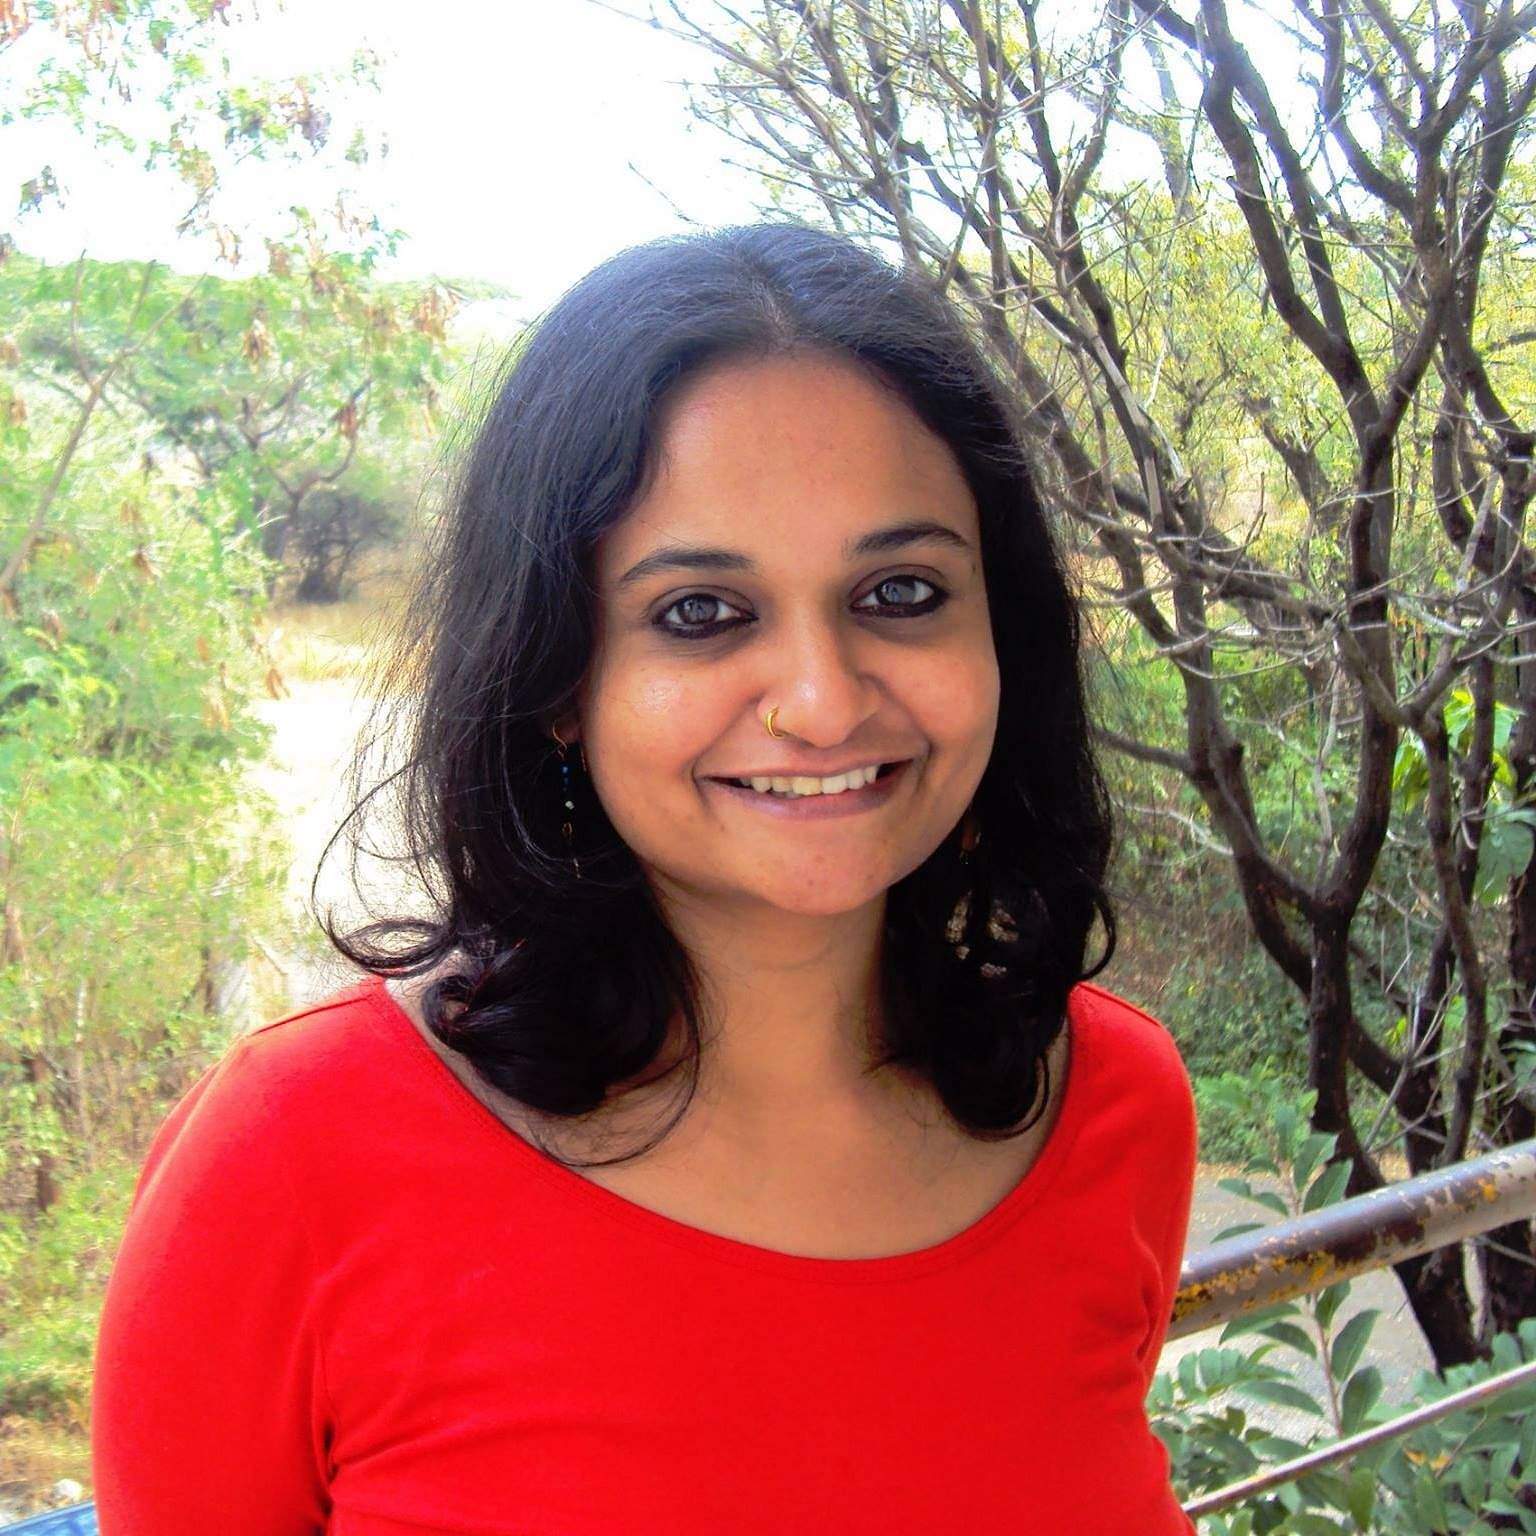 Sowmya Rajendran, who is based in Pune, has been looking closely at gende